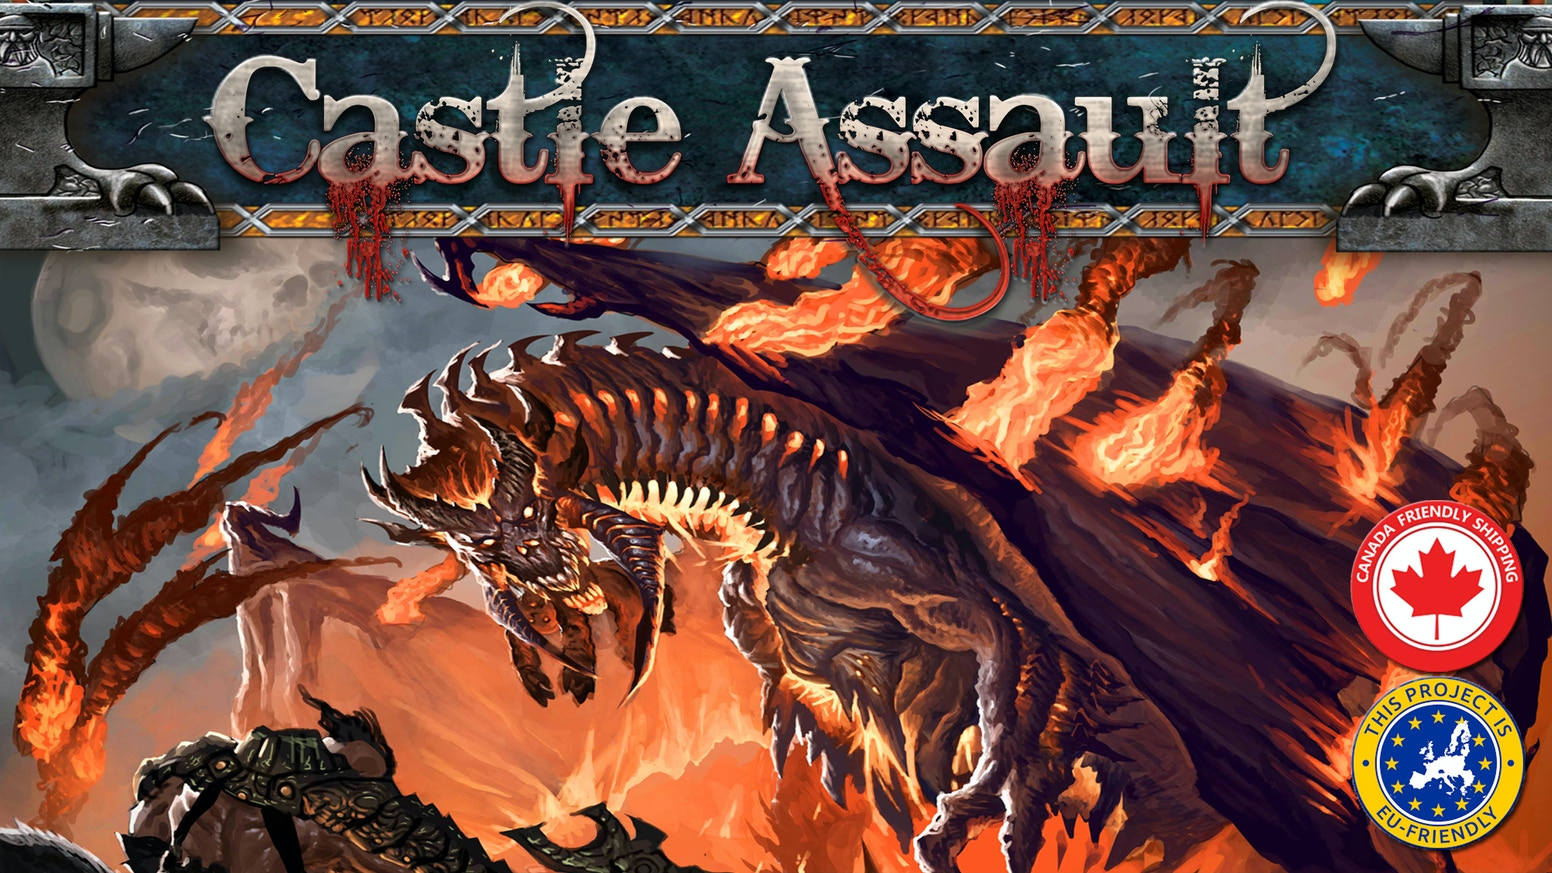 Draft warbands, upgrade heroes and craft legendary weapons as you battle an inferno of horrors on an epic quest to forge your destiny.